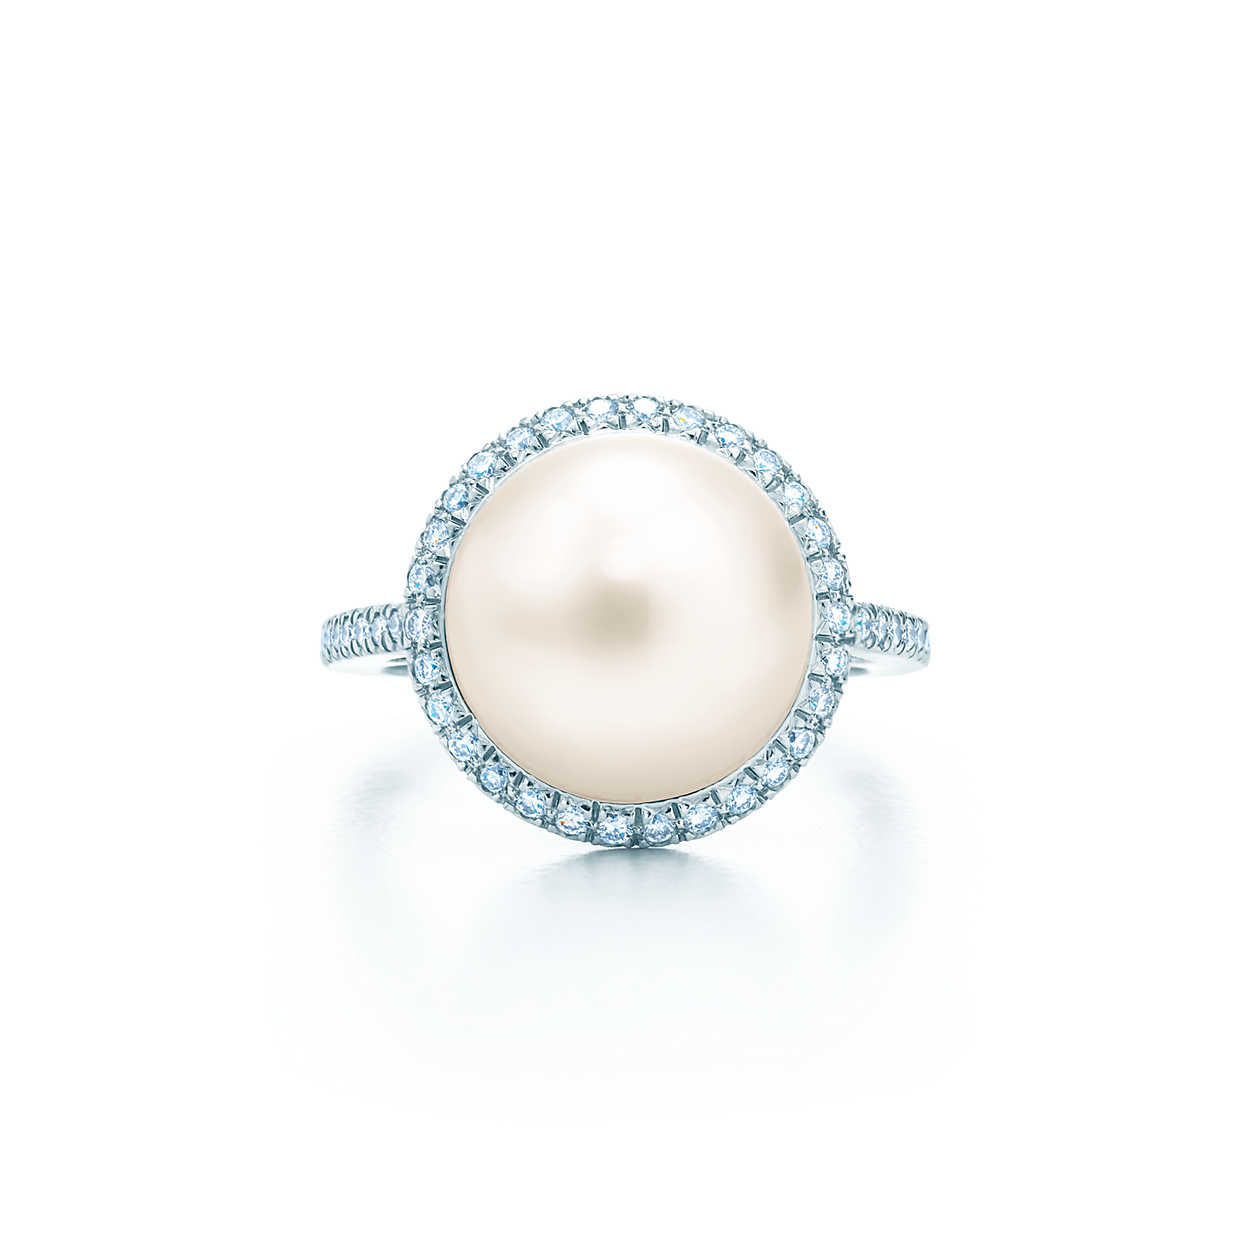 Tiffany & Co. South Sea Noble Pearl Ring